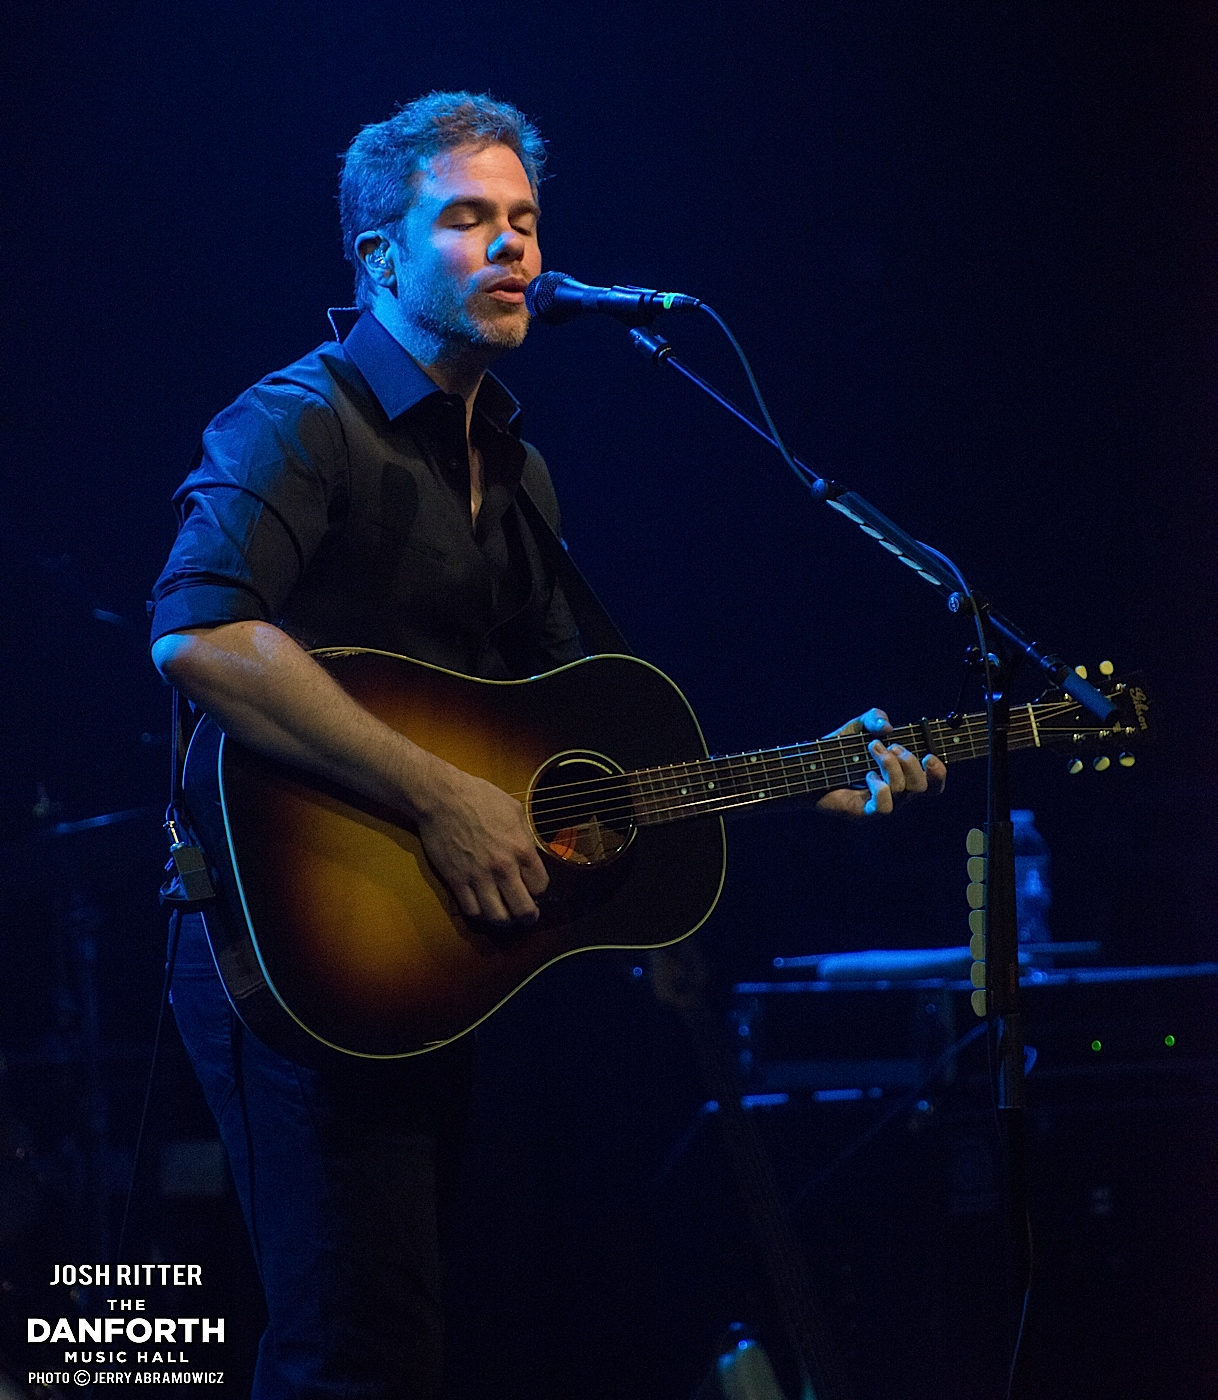 JOSH RITTER performs at The Danforth Music Hall.